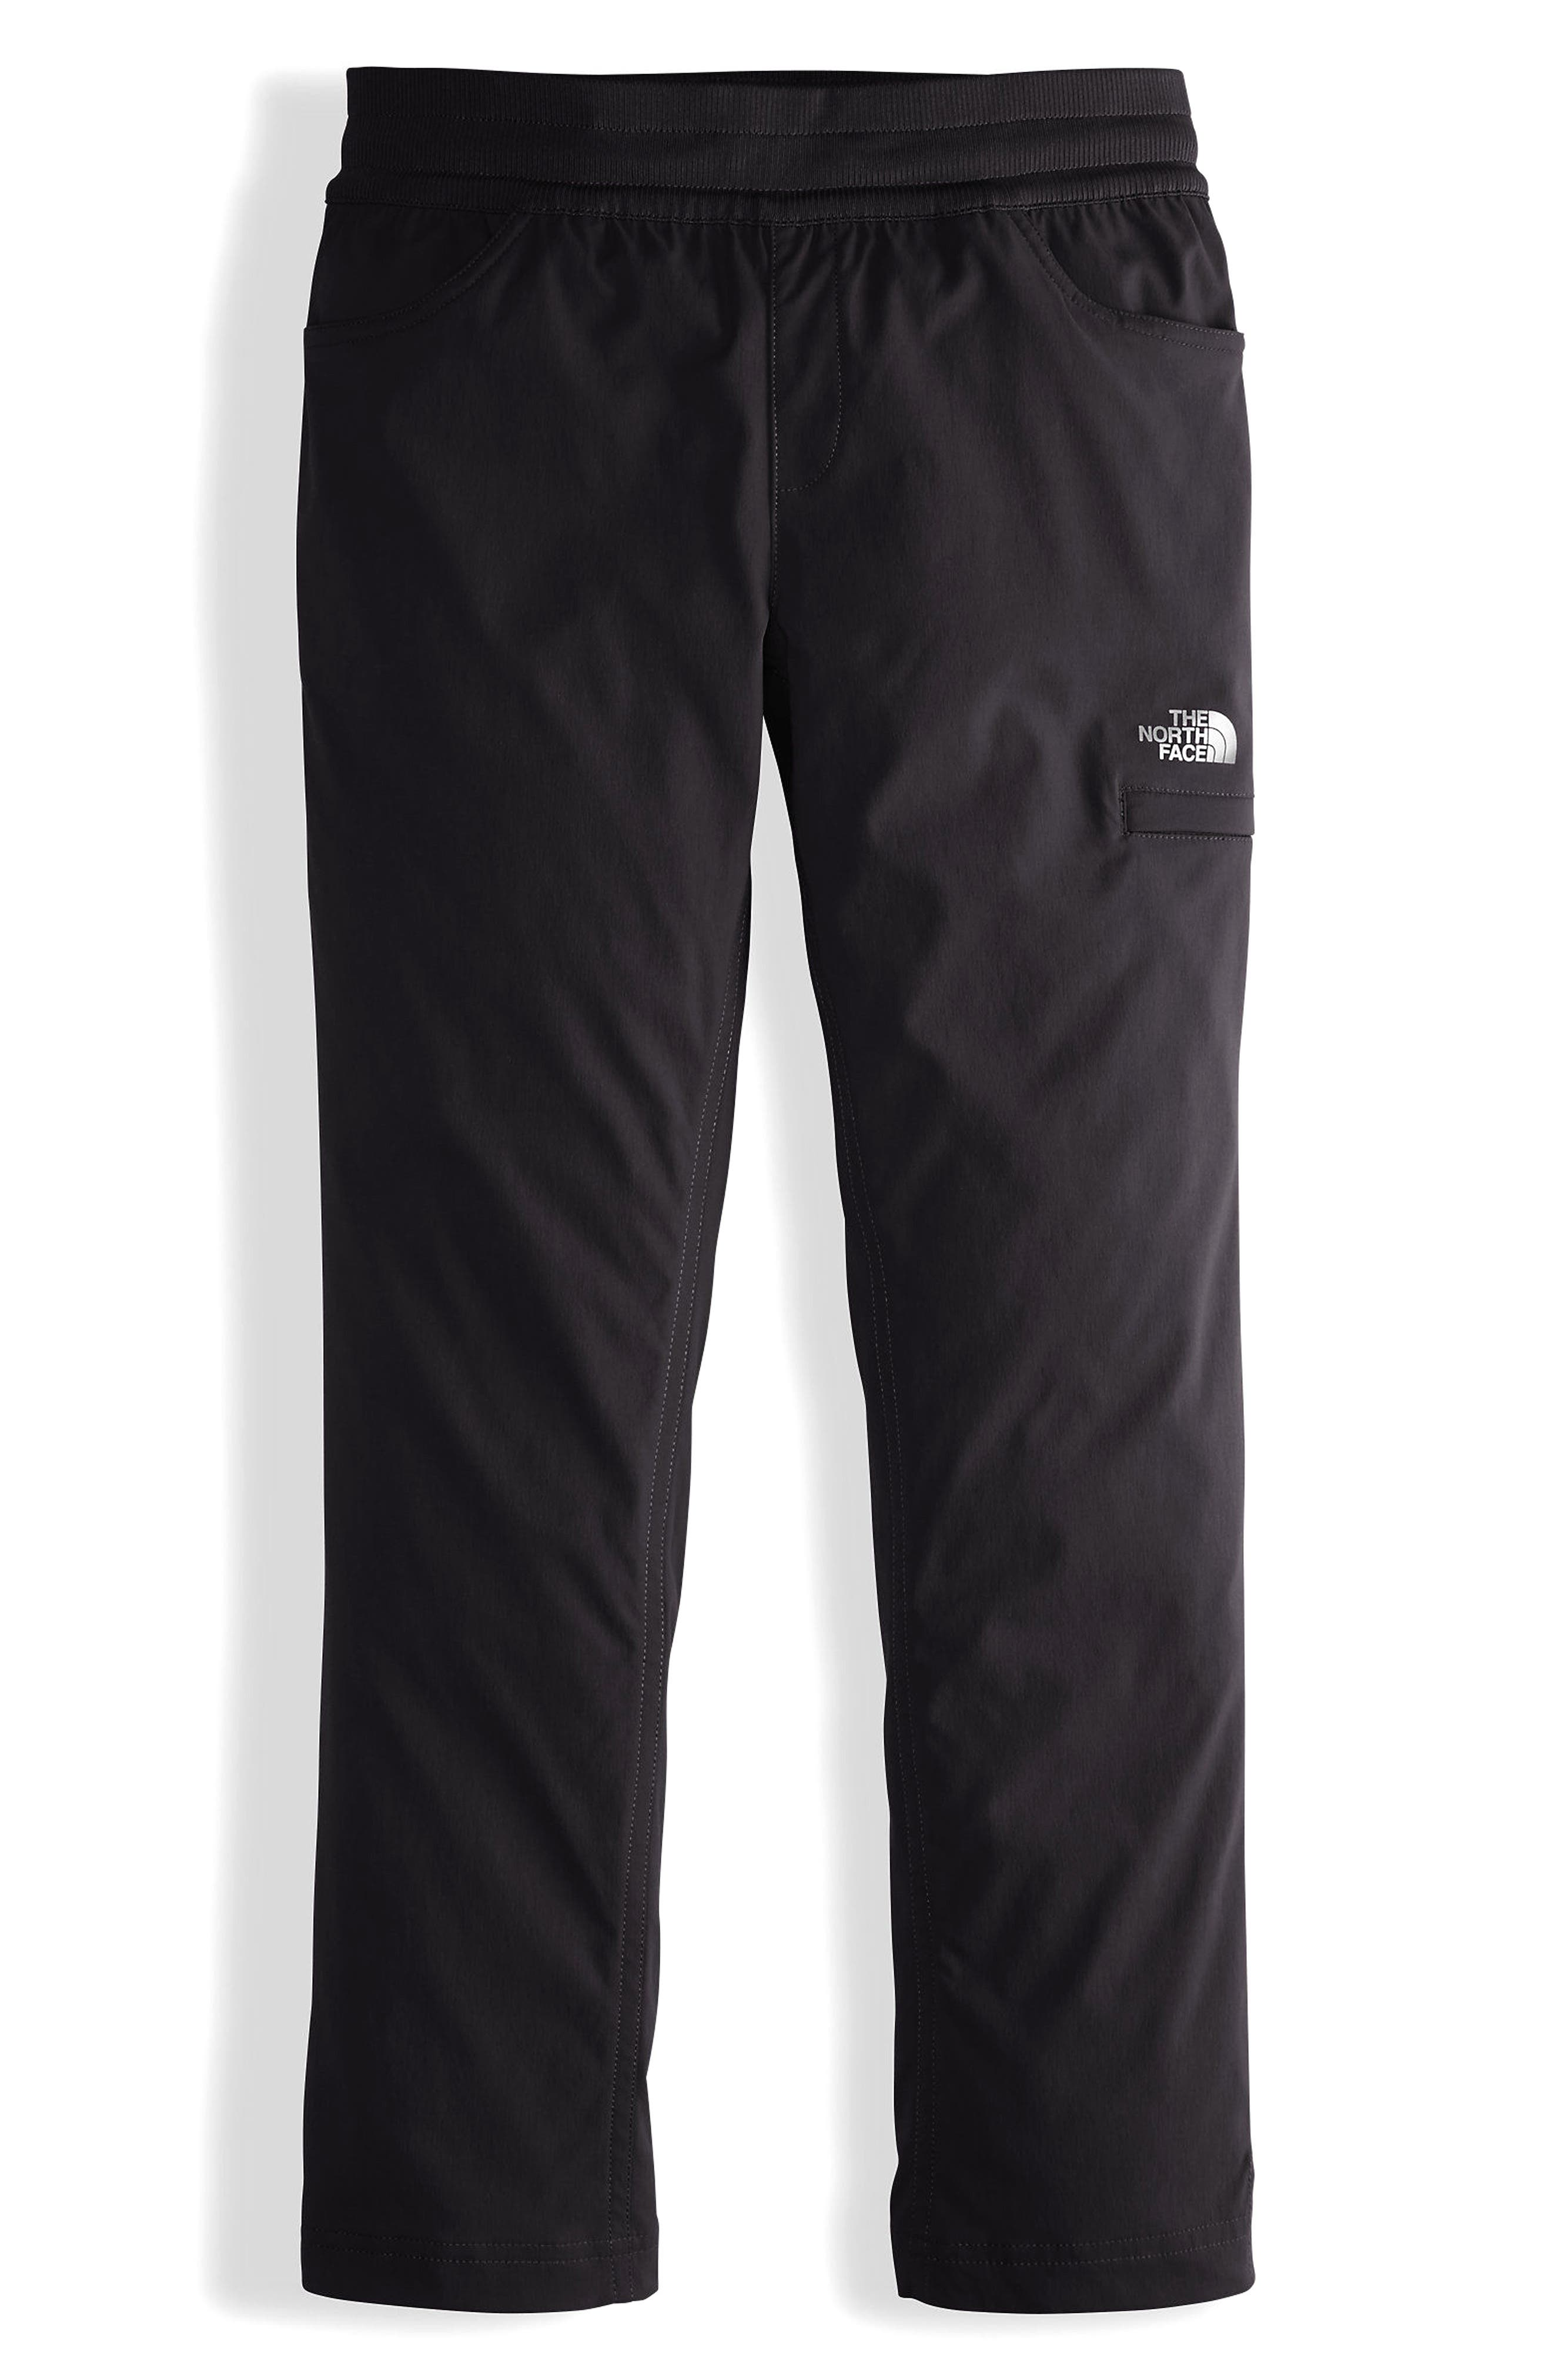 THE NORTH FACE Aphrodite Luxe Pants